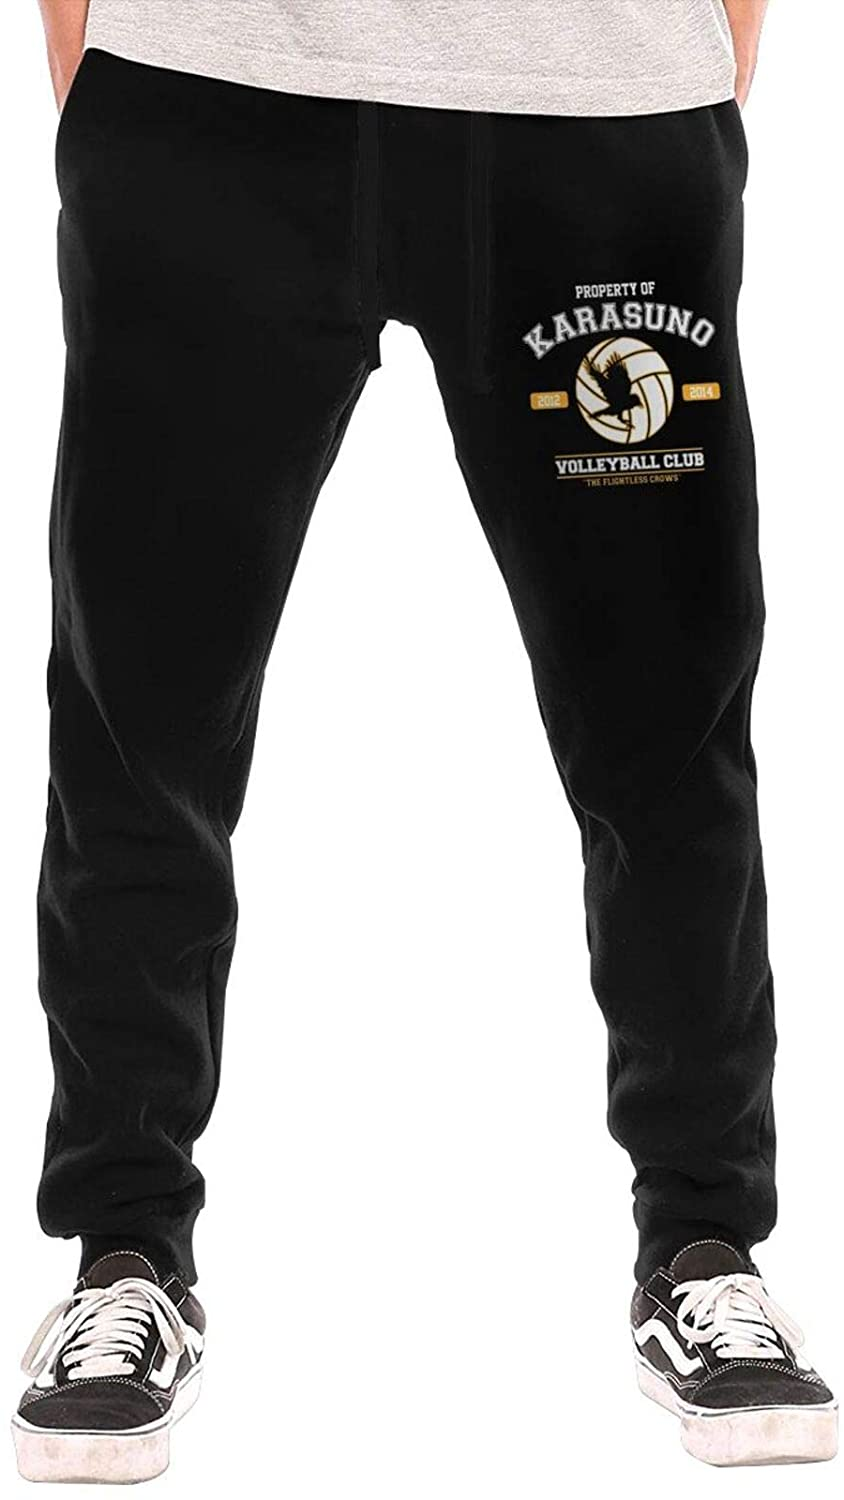 Men's 95vibes Property of Karasuno Volleyball Club Classic Casual Fit Trousers